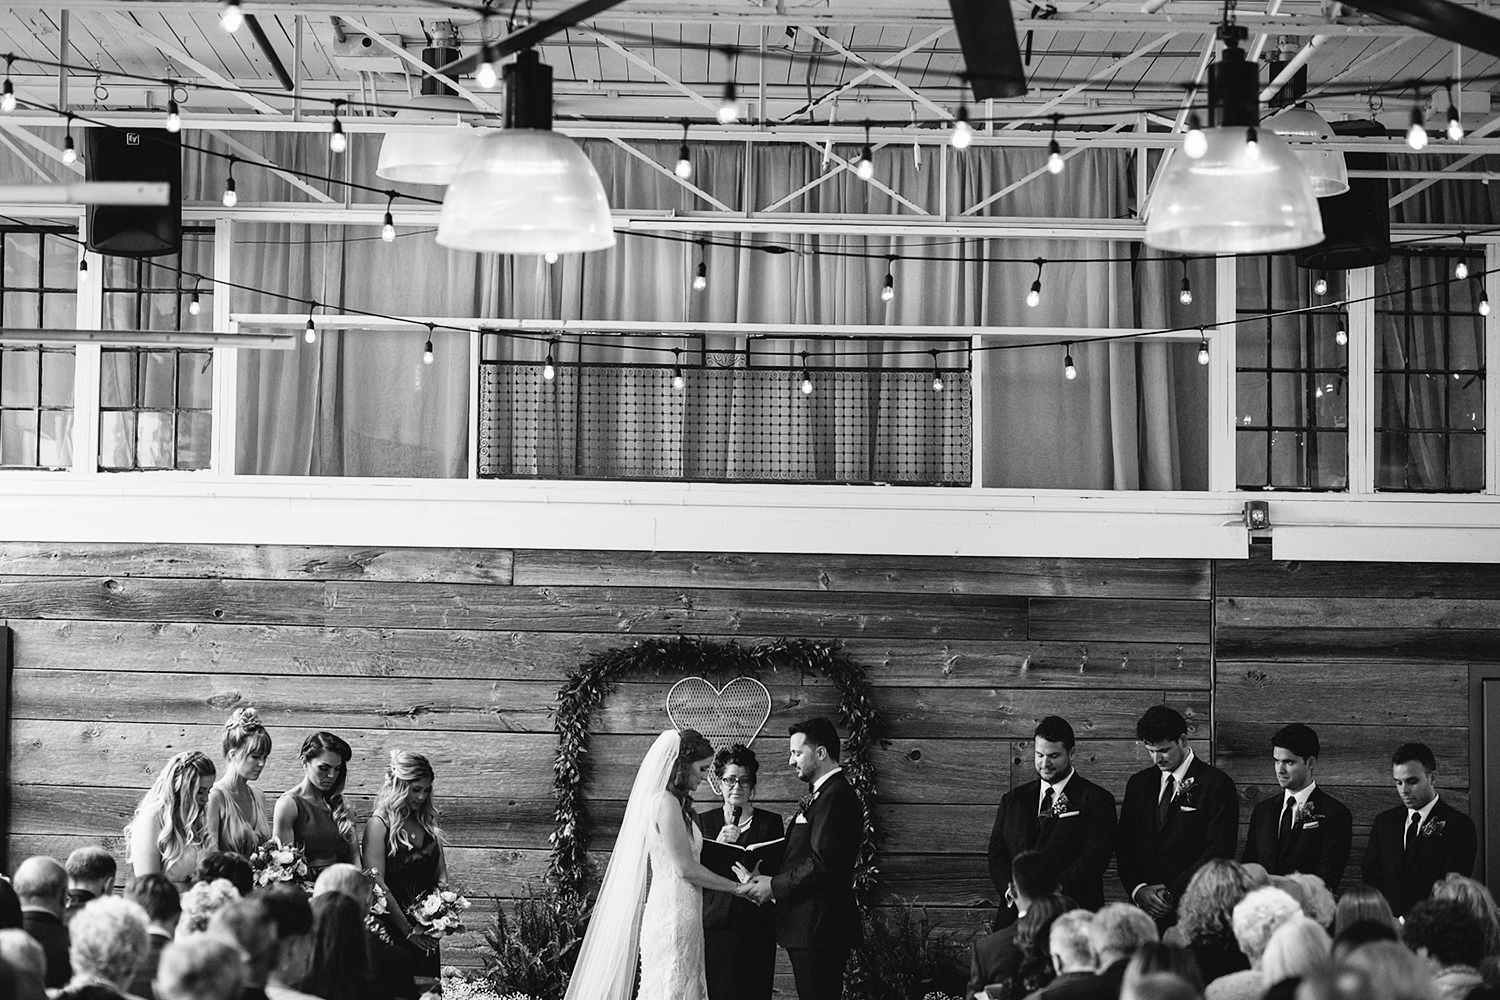 downtown-toronto-wedding-photographer-ryanne-hollies-photography-airship37-distillery-district-wedding-day-modern-minimalist-venues-in-toronto-ceremony-documentary-moments-bride-and-groom-saying-vows-and-prayers.jpg